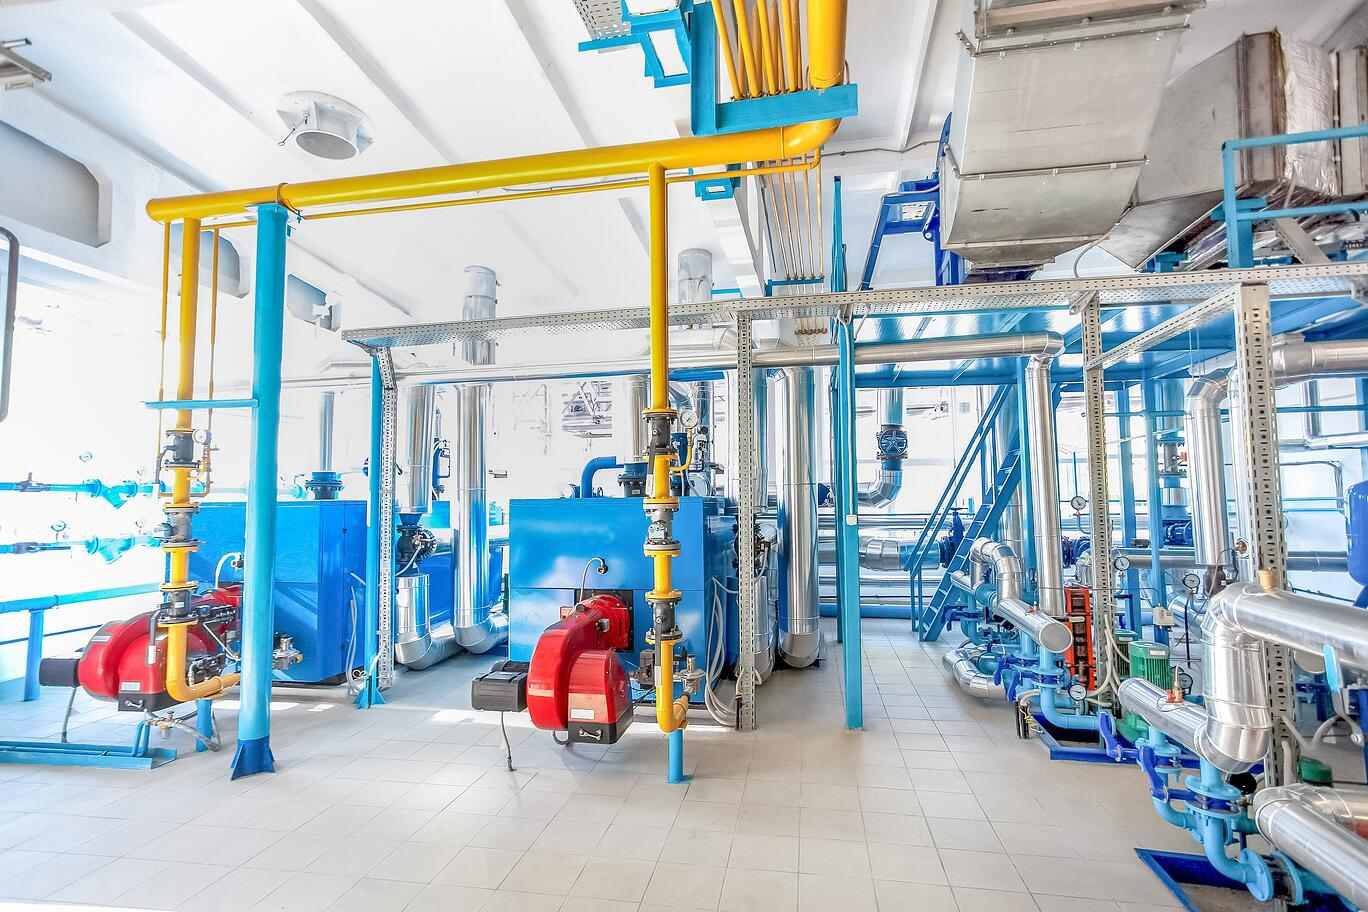 Avanceon has been awarded a contract for the provision of a sophisticated PLC based Control System for one of the largest Water Network Customers in Qatar